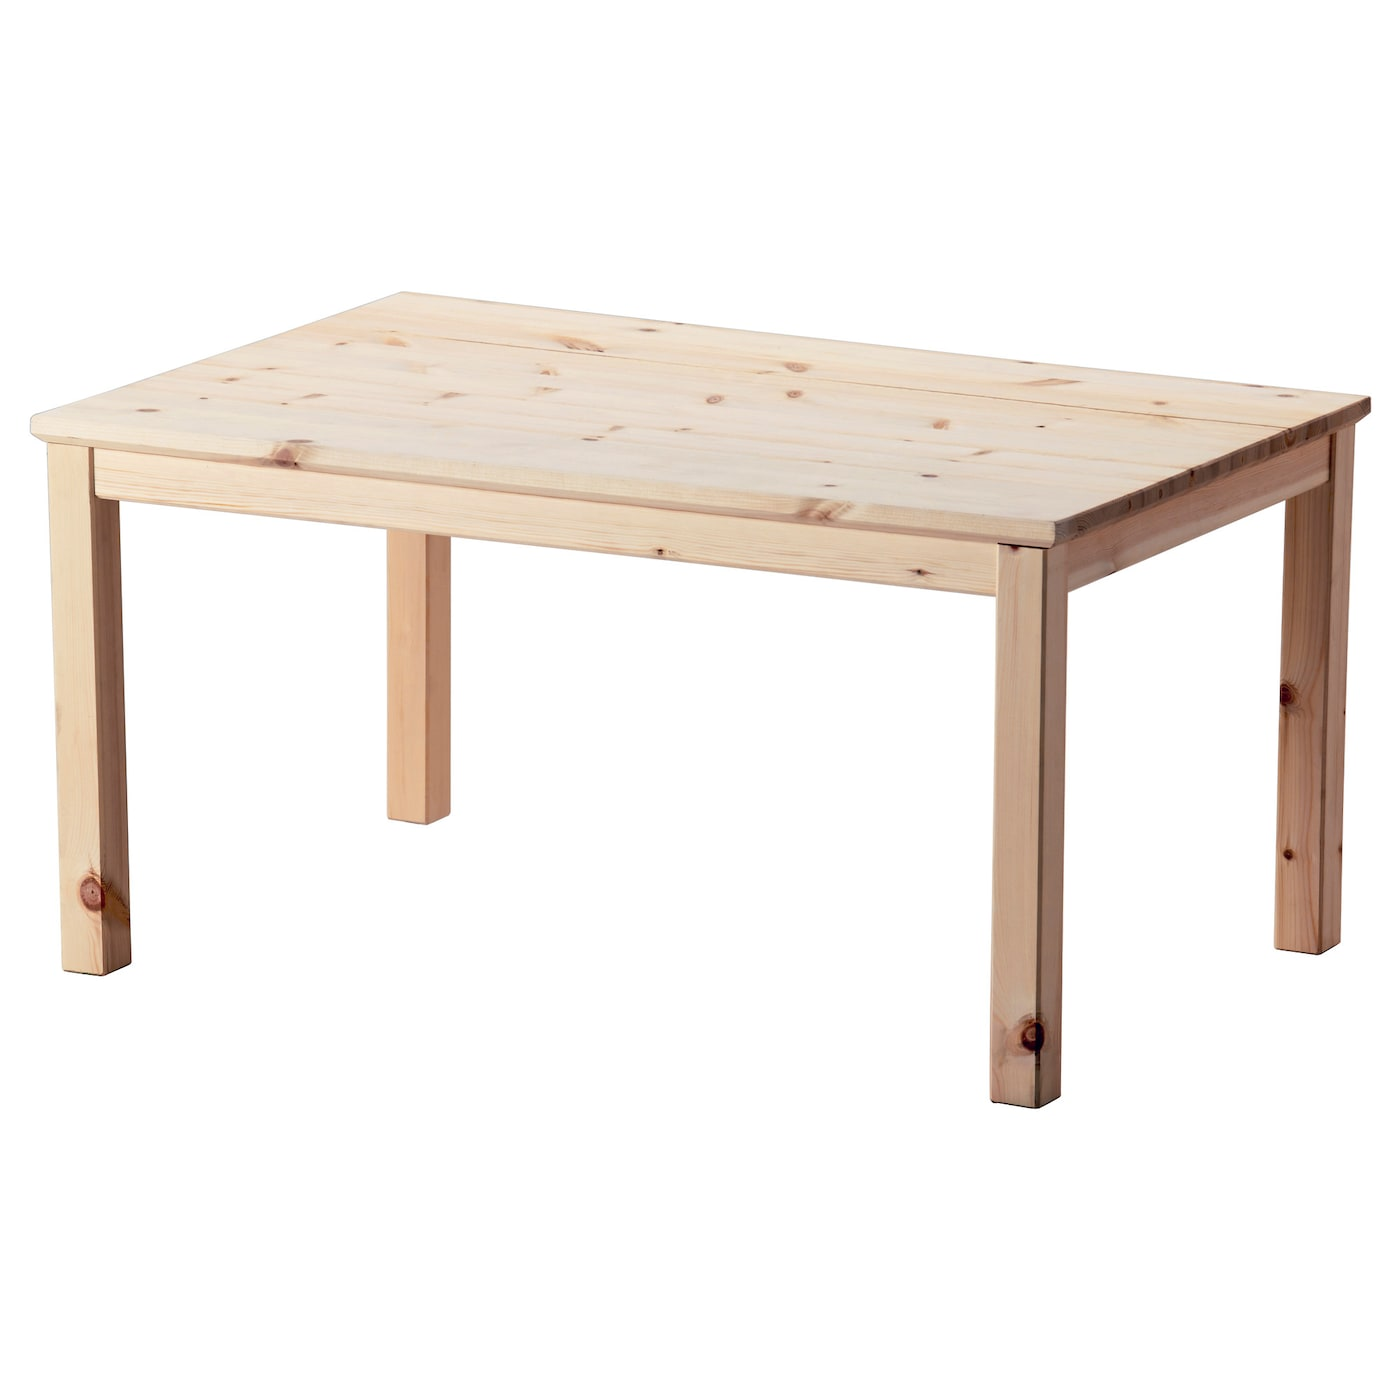 Norn S Coffee Table Pine 89x59 Cm Ikea